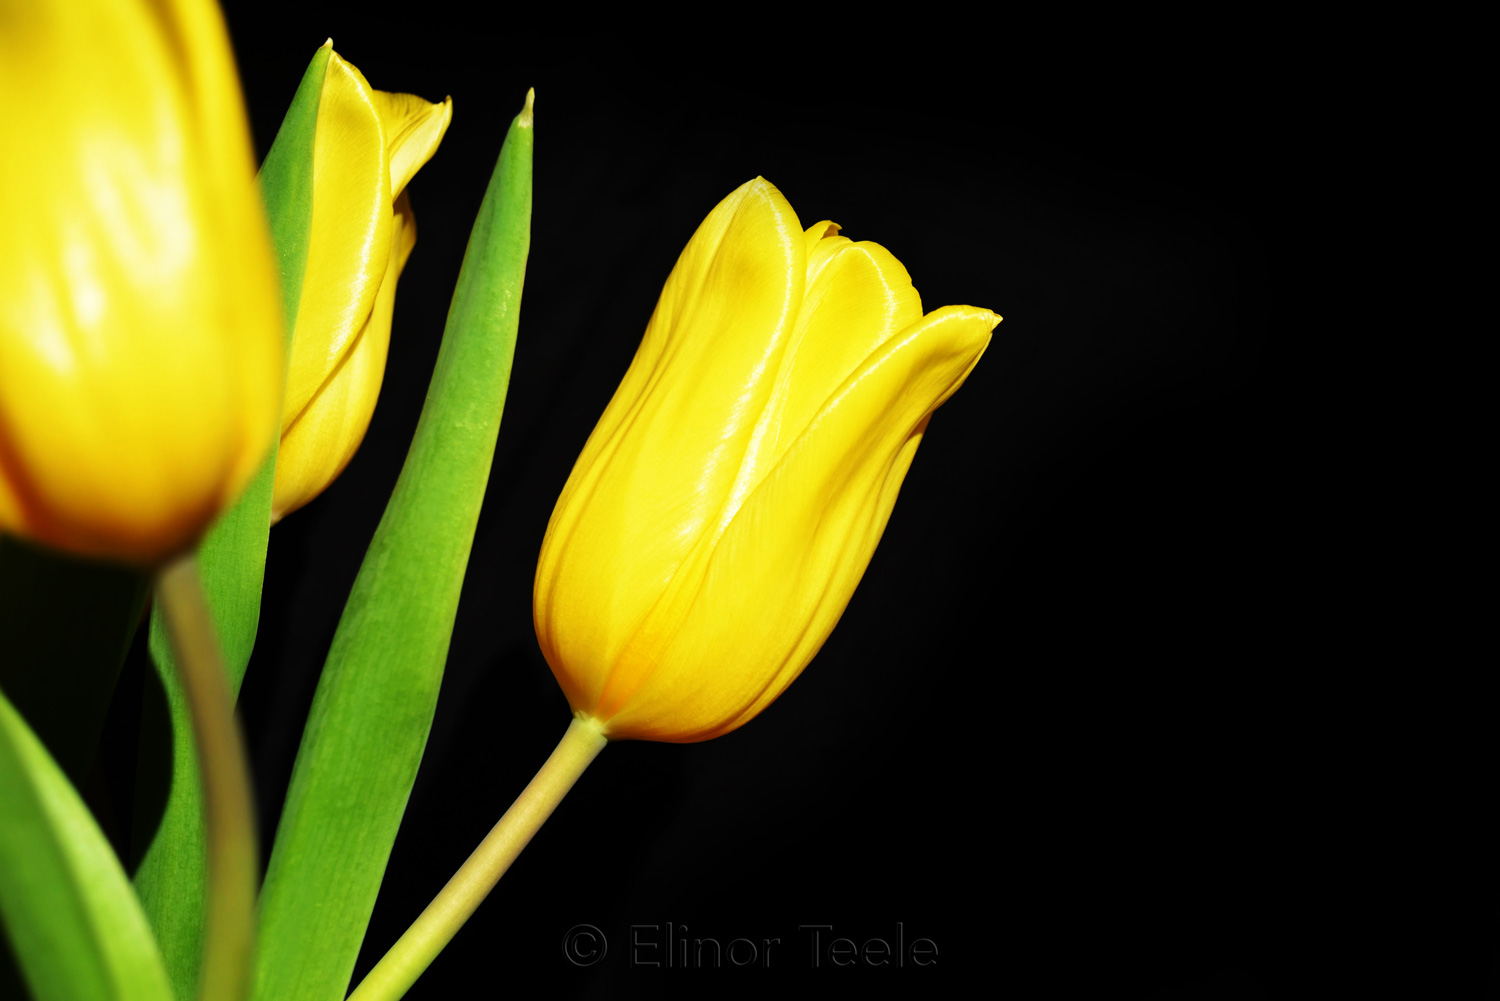 Yellow Tulips on Black Background 6